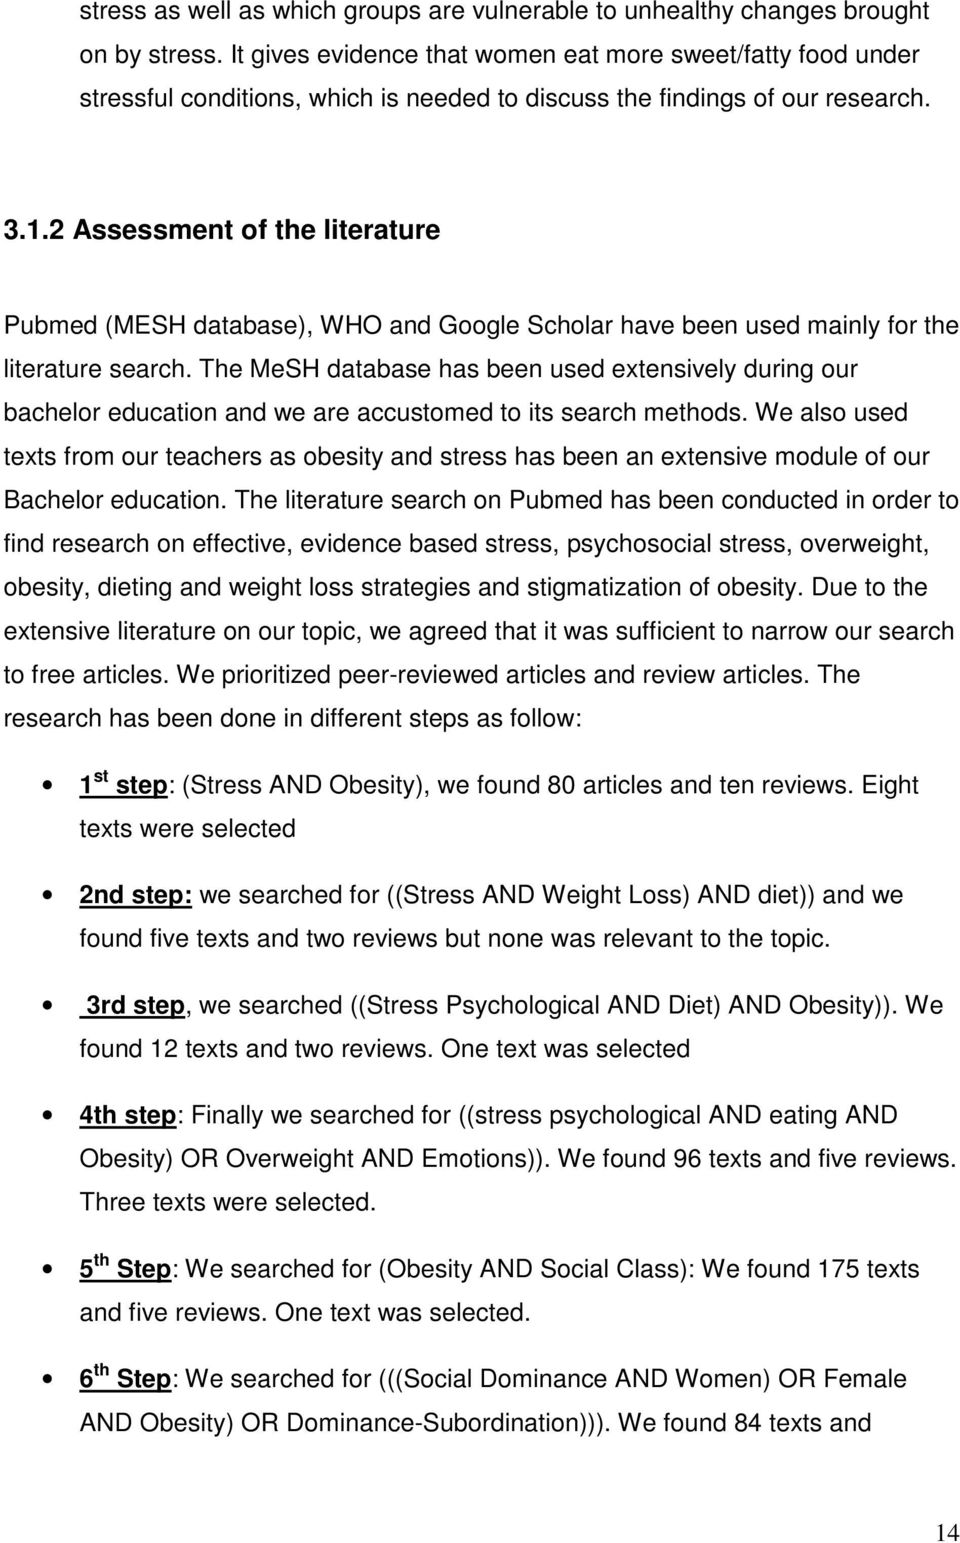 2 Assessment of the literature Pubmed (MESH database), WHO and Google Scholar have been used mainly for the literature search.